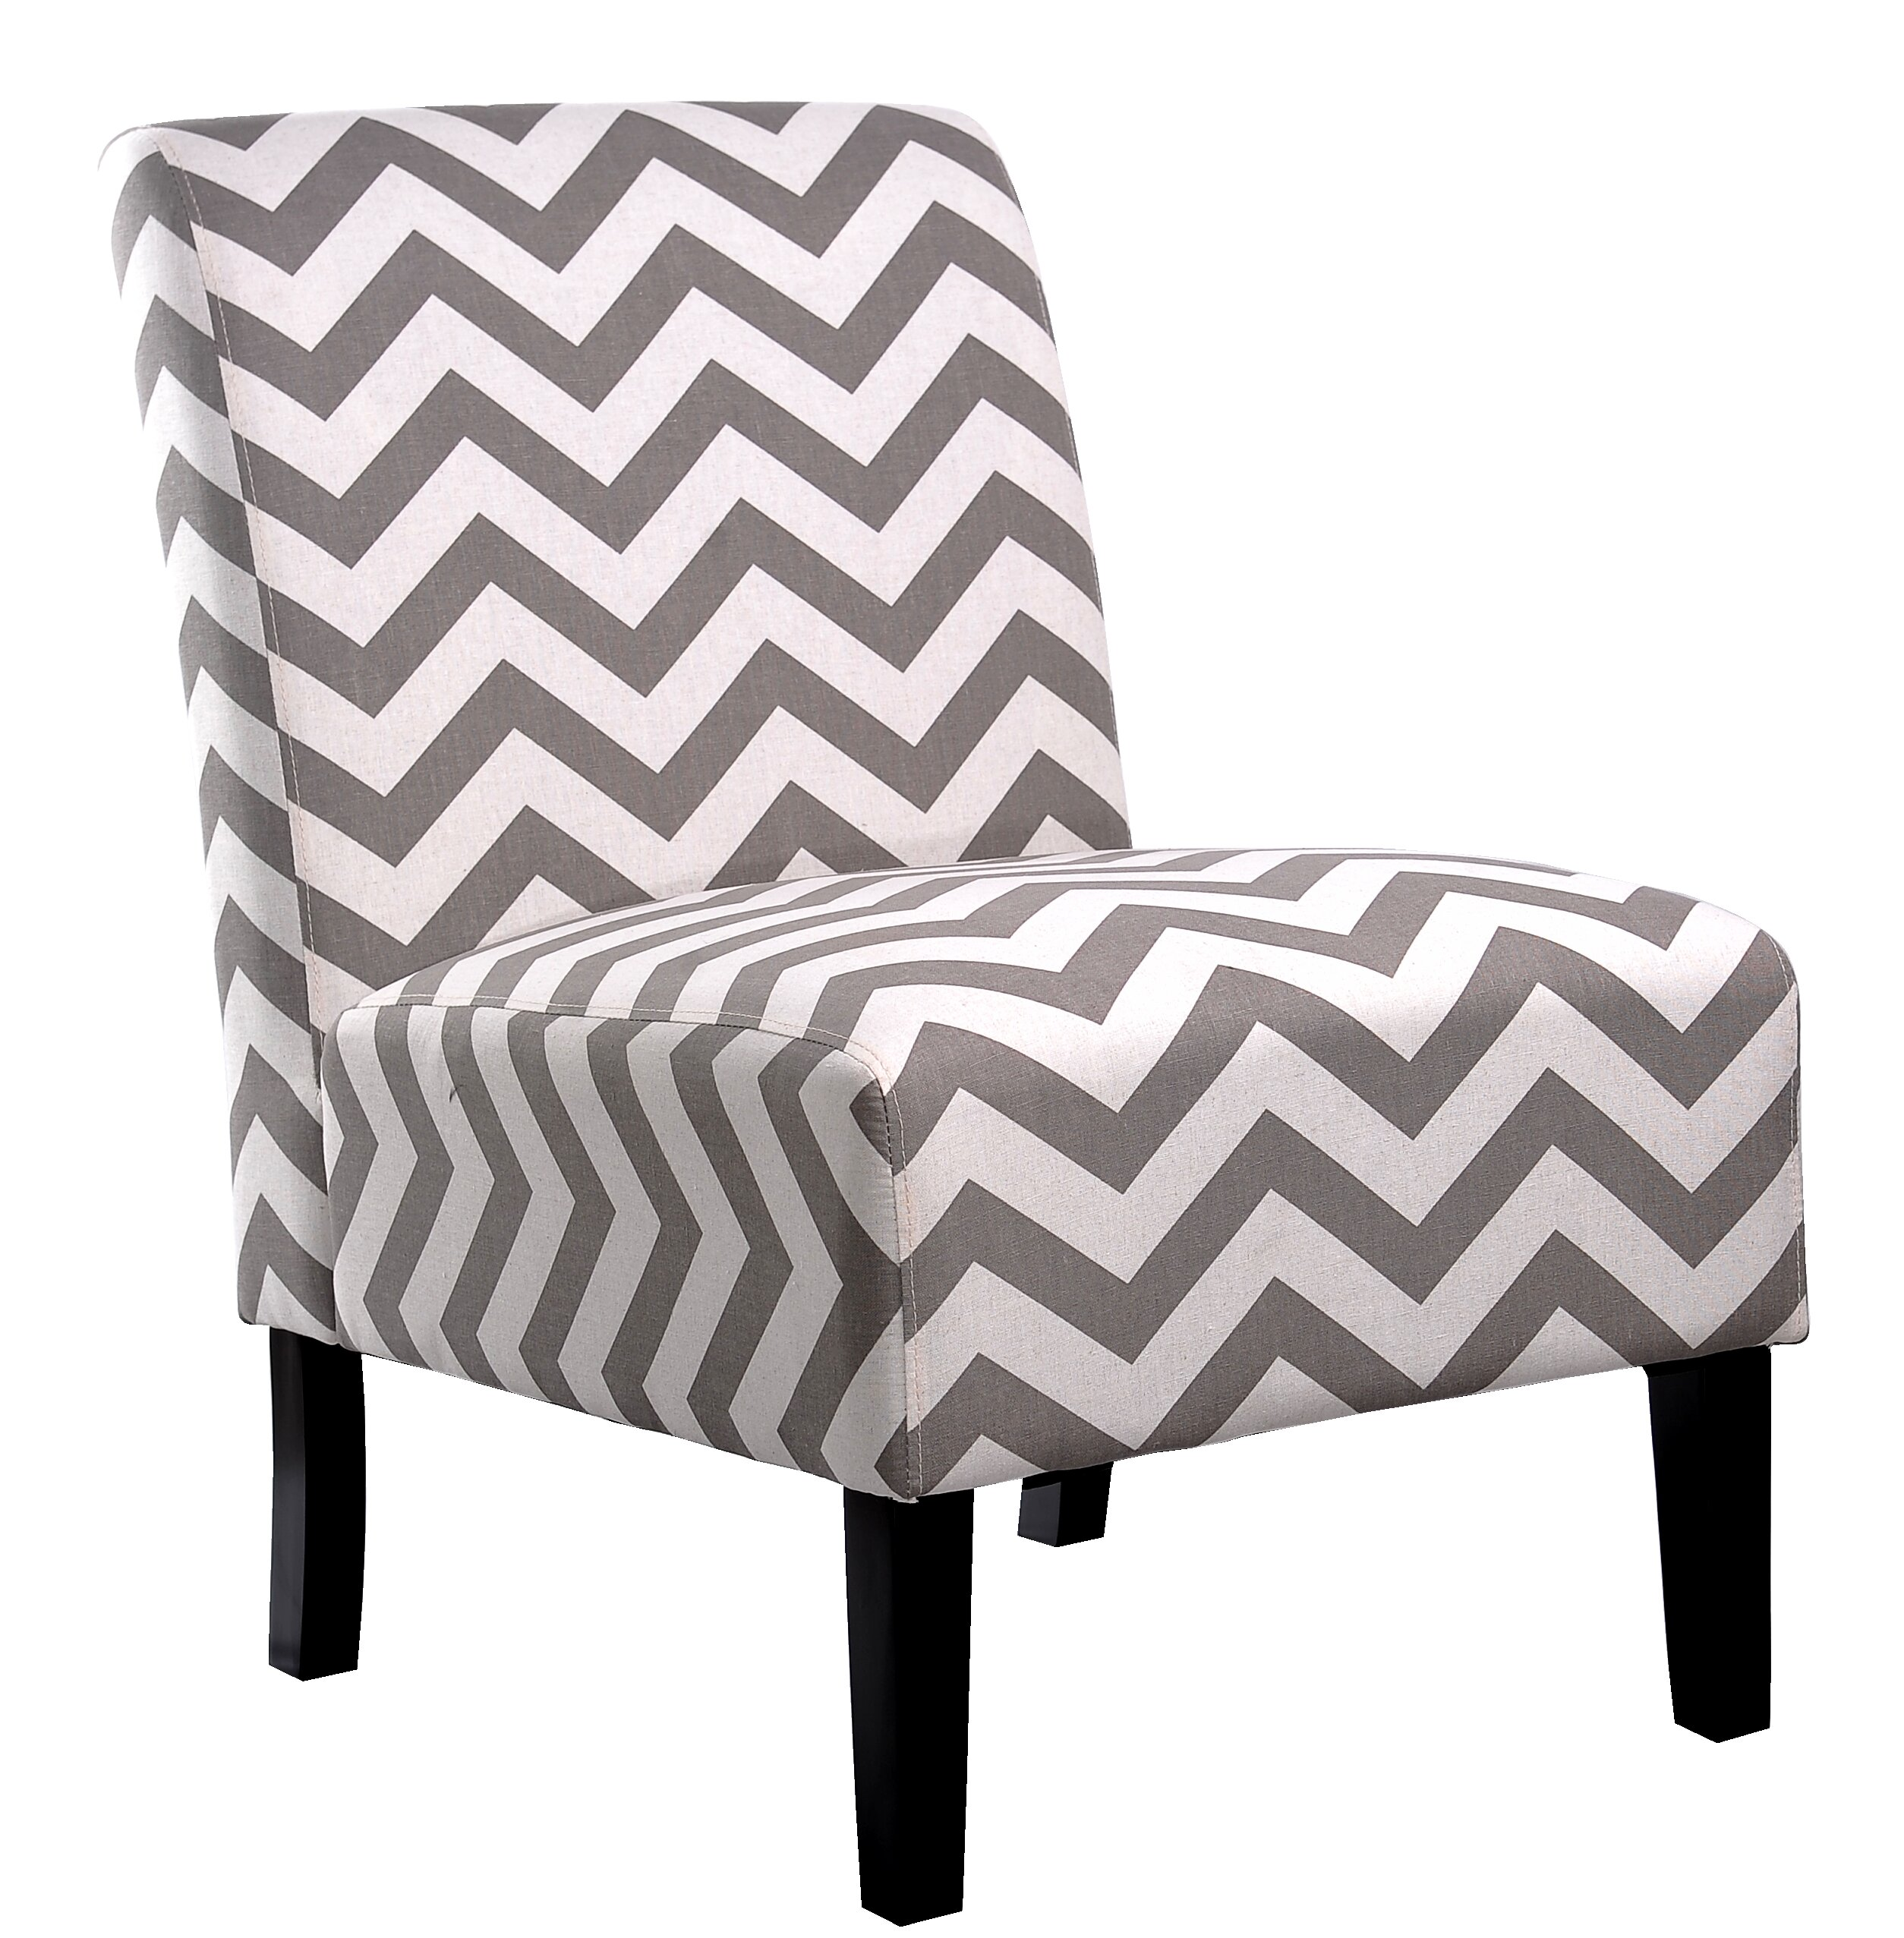 Outstanding Hartlyn Slipper Chair Bralicious Painted Fabric Chair Ideas Braliciousco